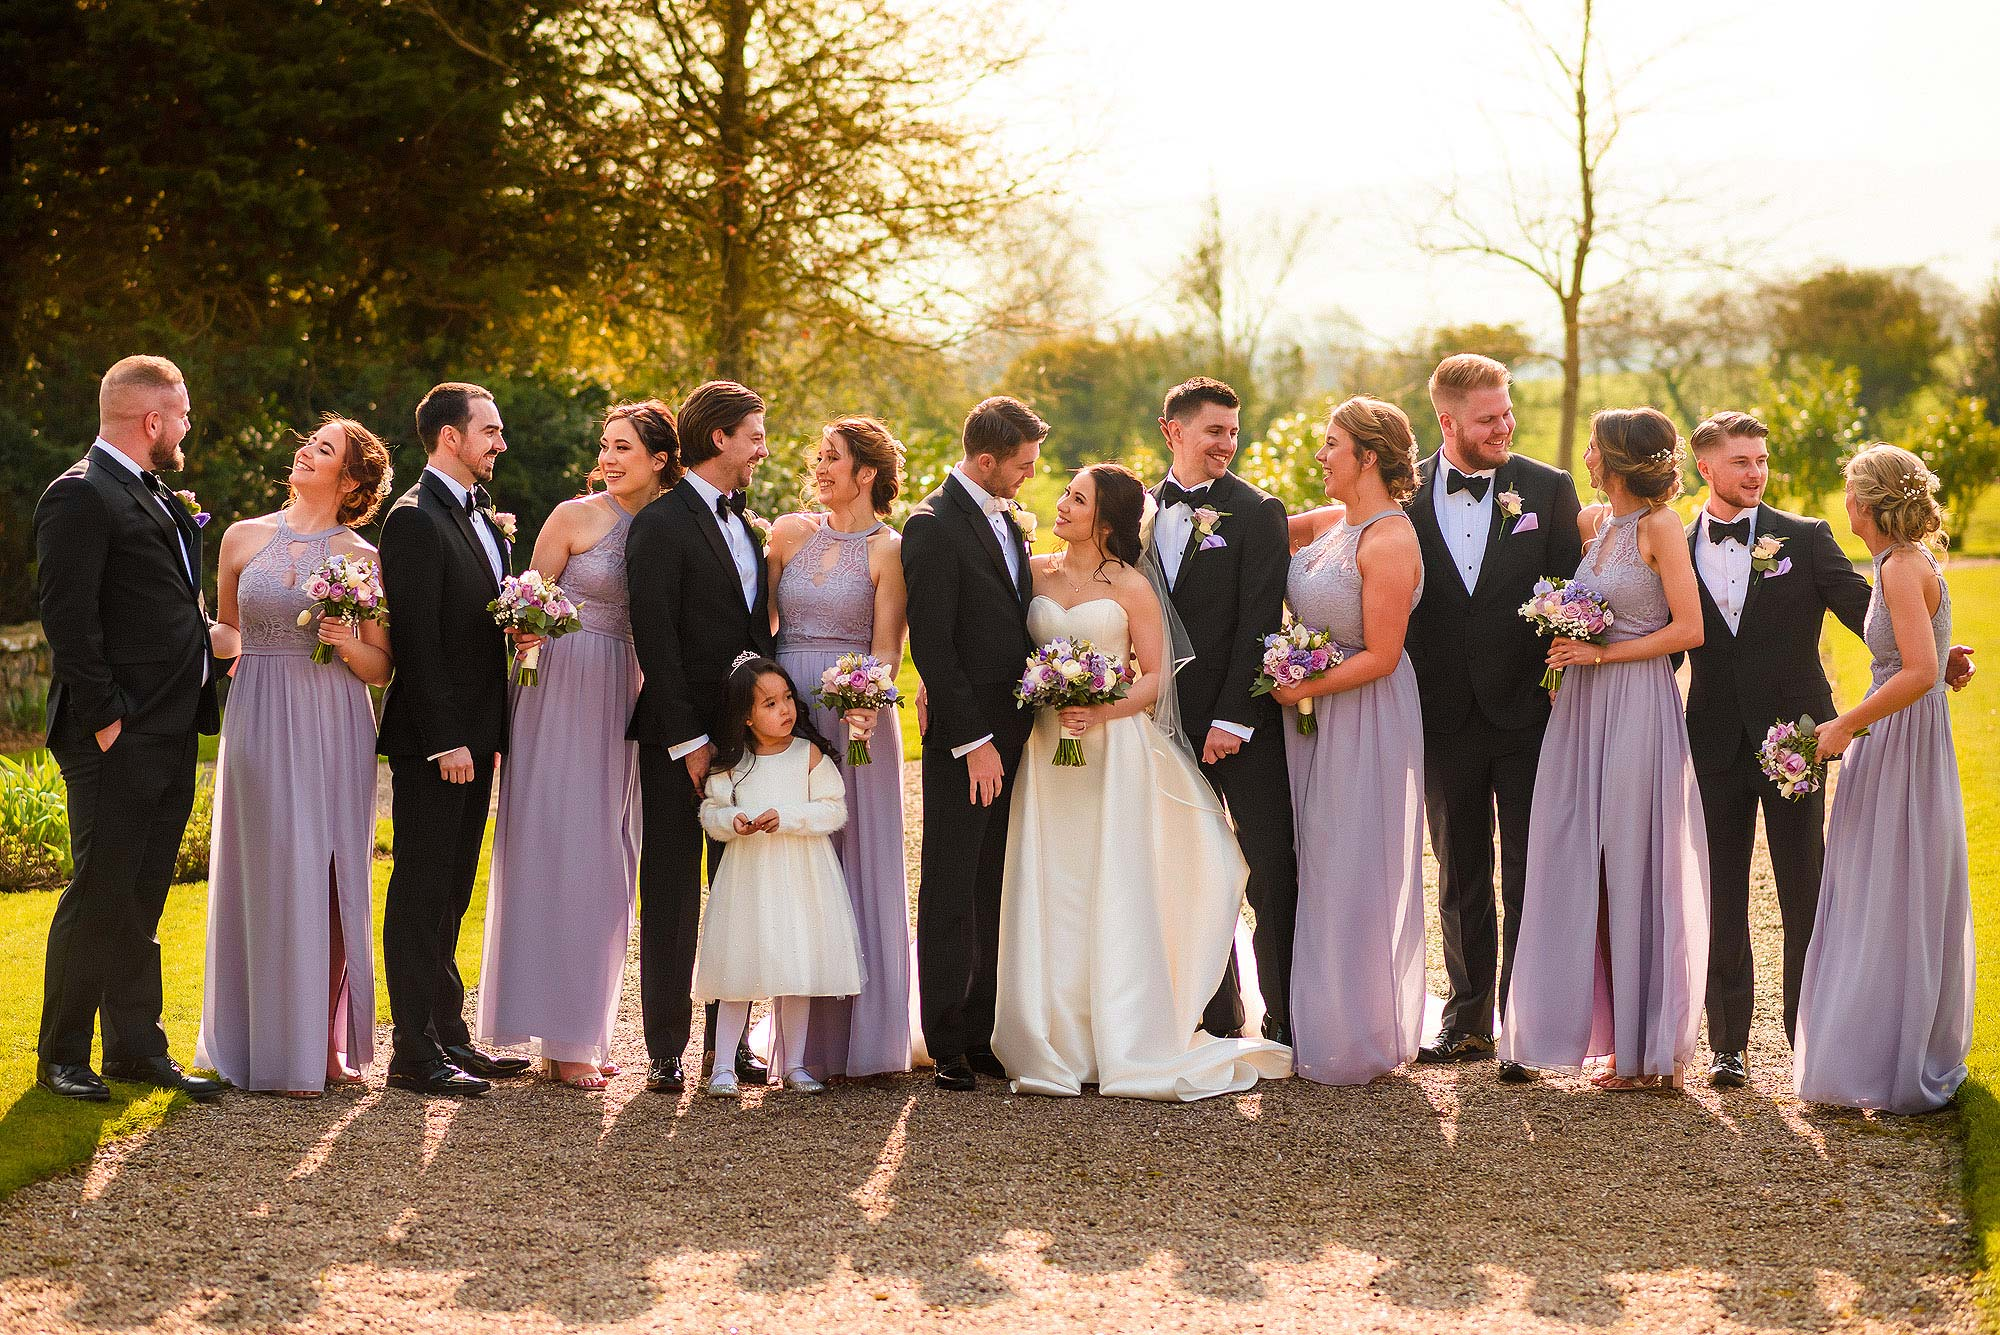 group photograph of full bridal party